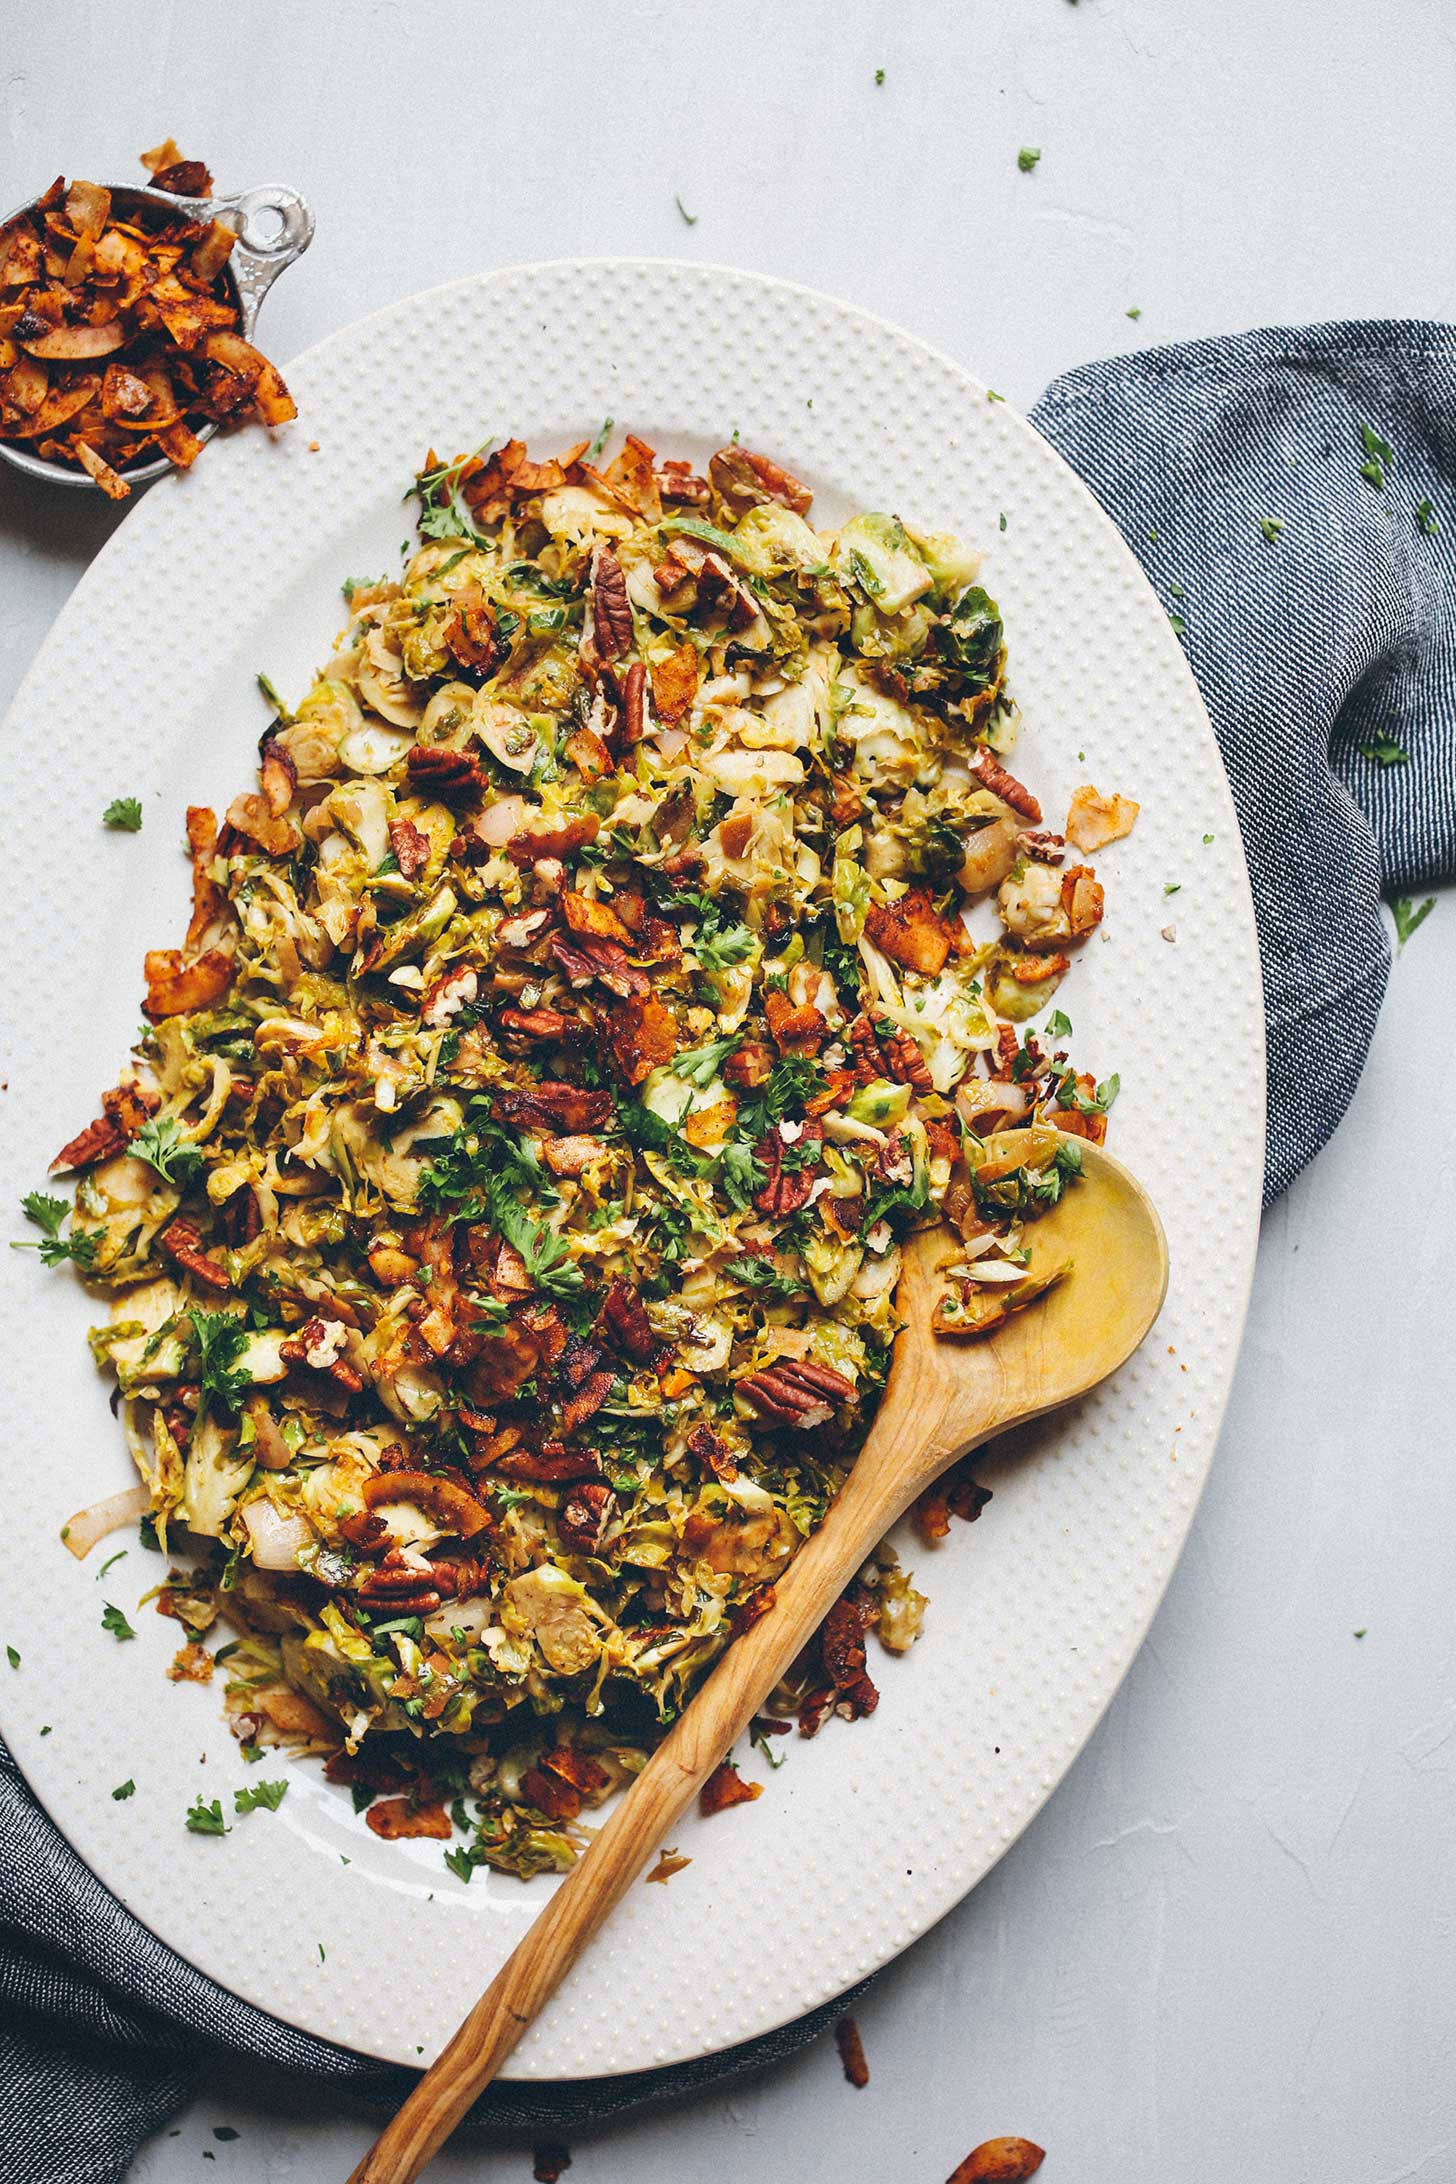 Vegan Brussel Sprouts Recipes  Brussels Sprout Slaw with Coconut Bacon